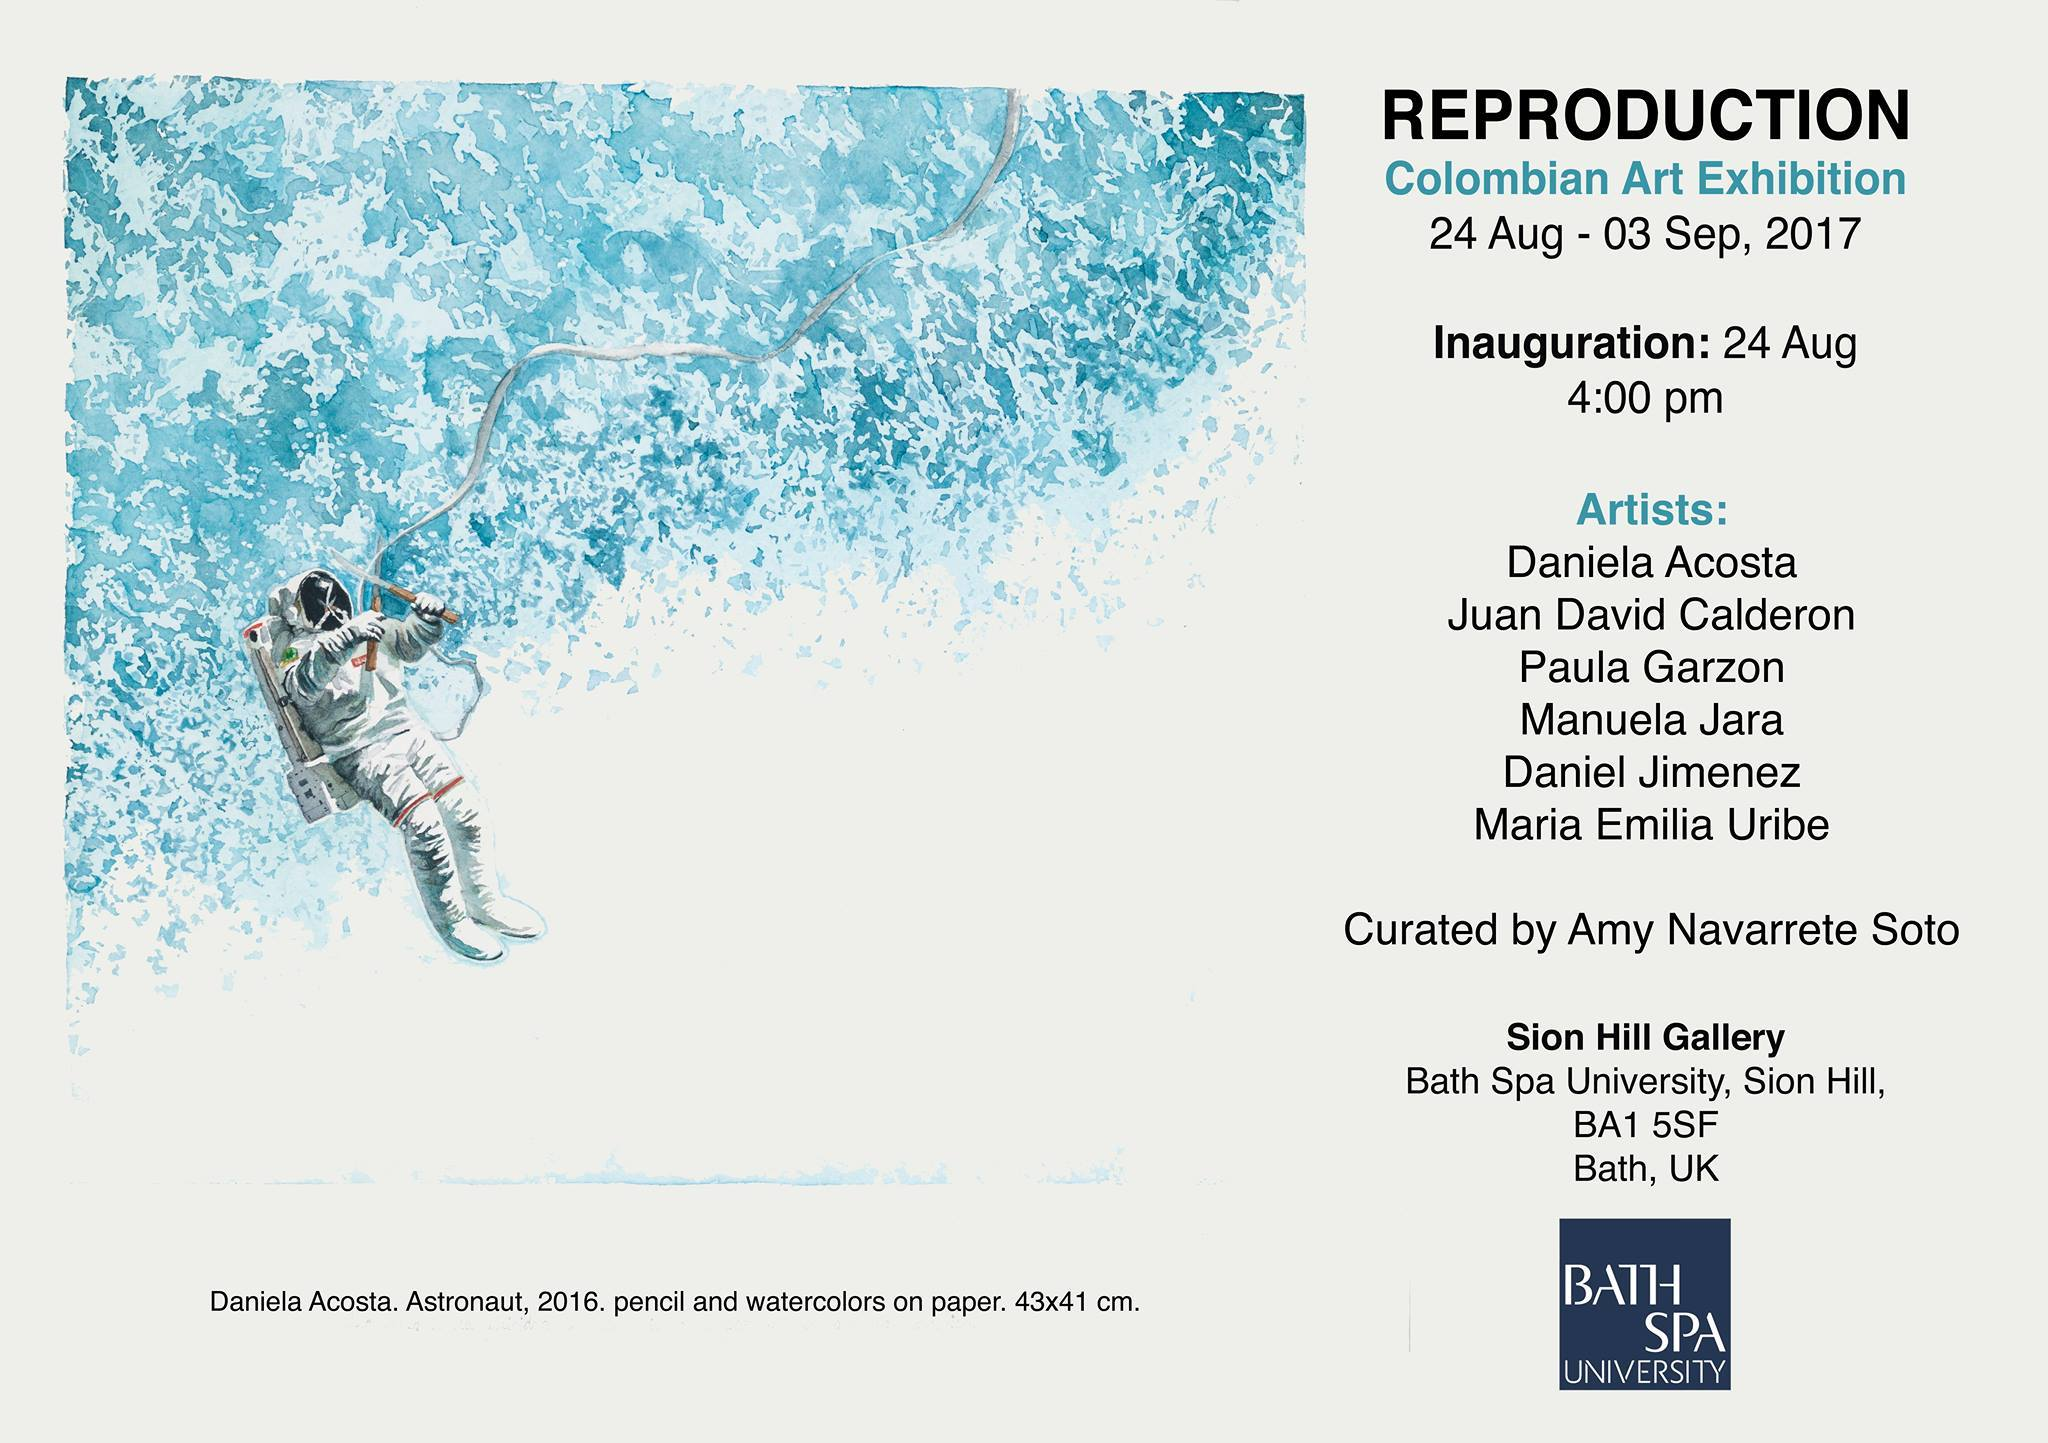 Reproduction: Colombian Art Exhibition. Bath, UK Sion HIll Gallery. 2017. Curator: Amy Navarrete